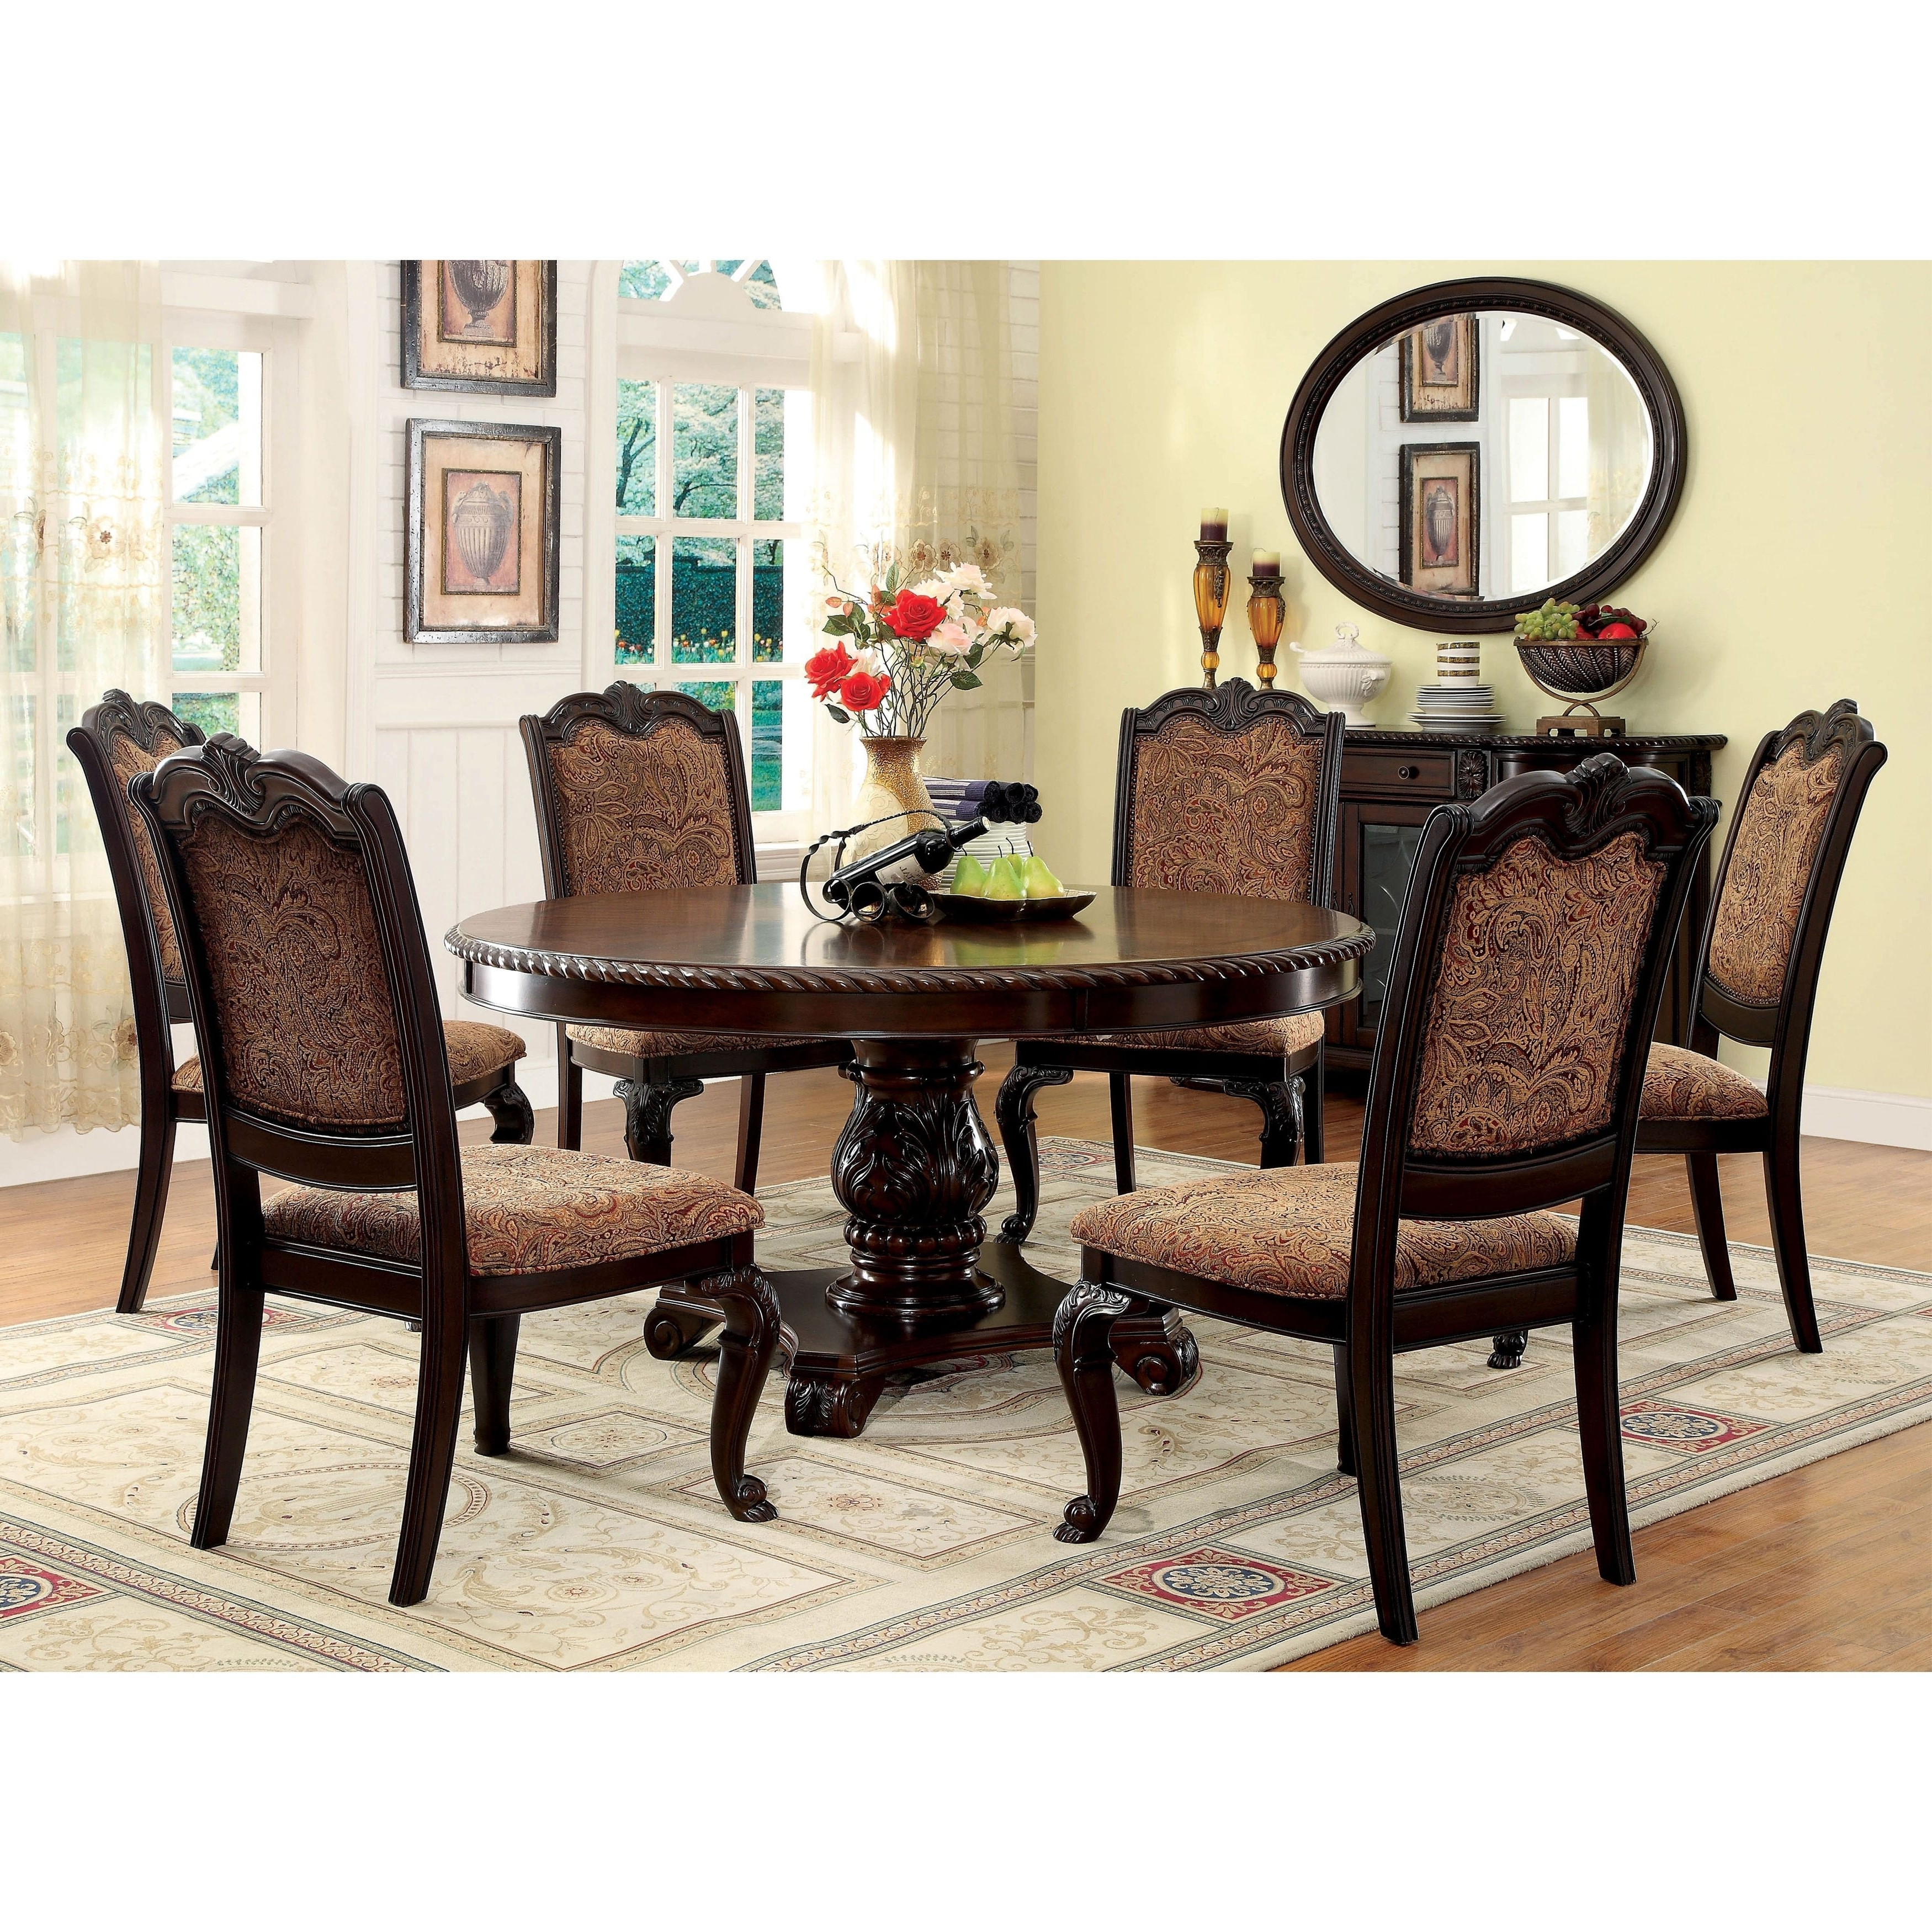 Furniture Of America Oskarre Iii Brown Cherry (Red) 7 Piece Formal With Widely Used Norwood 7 Piece Rectangular Extension Dining Sets With Bench, Host & Side Chairs (View 6 of 25)